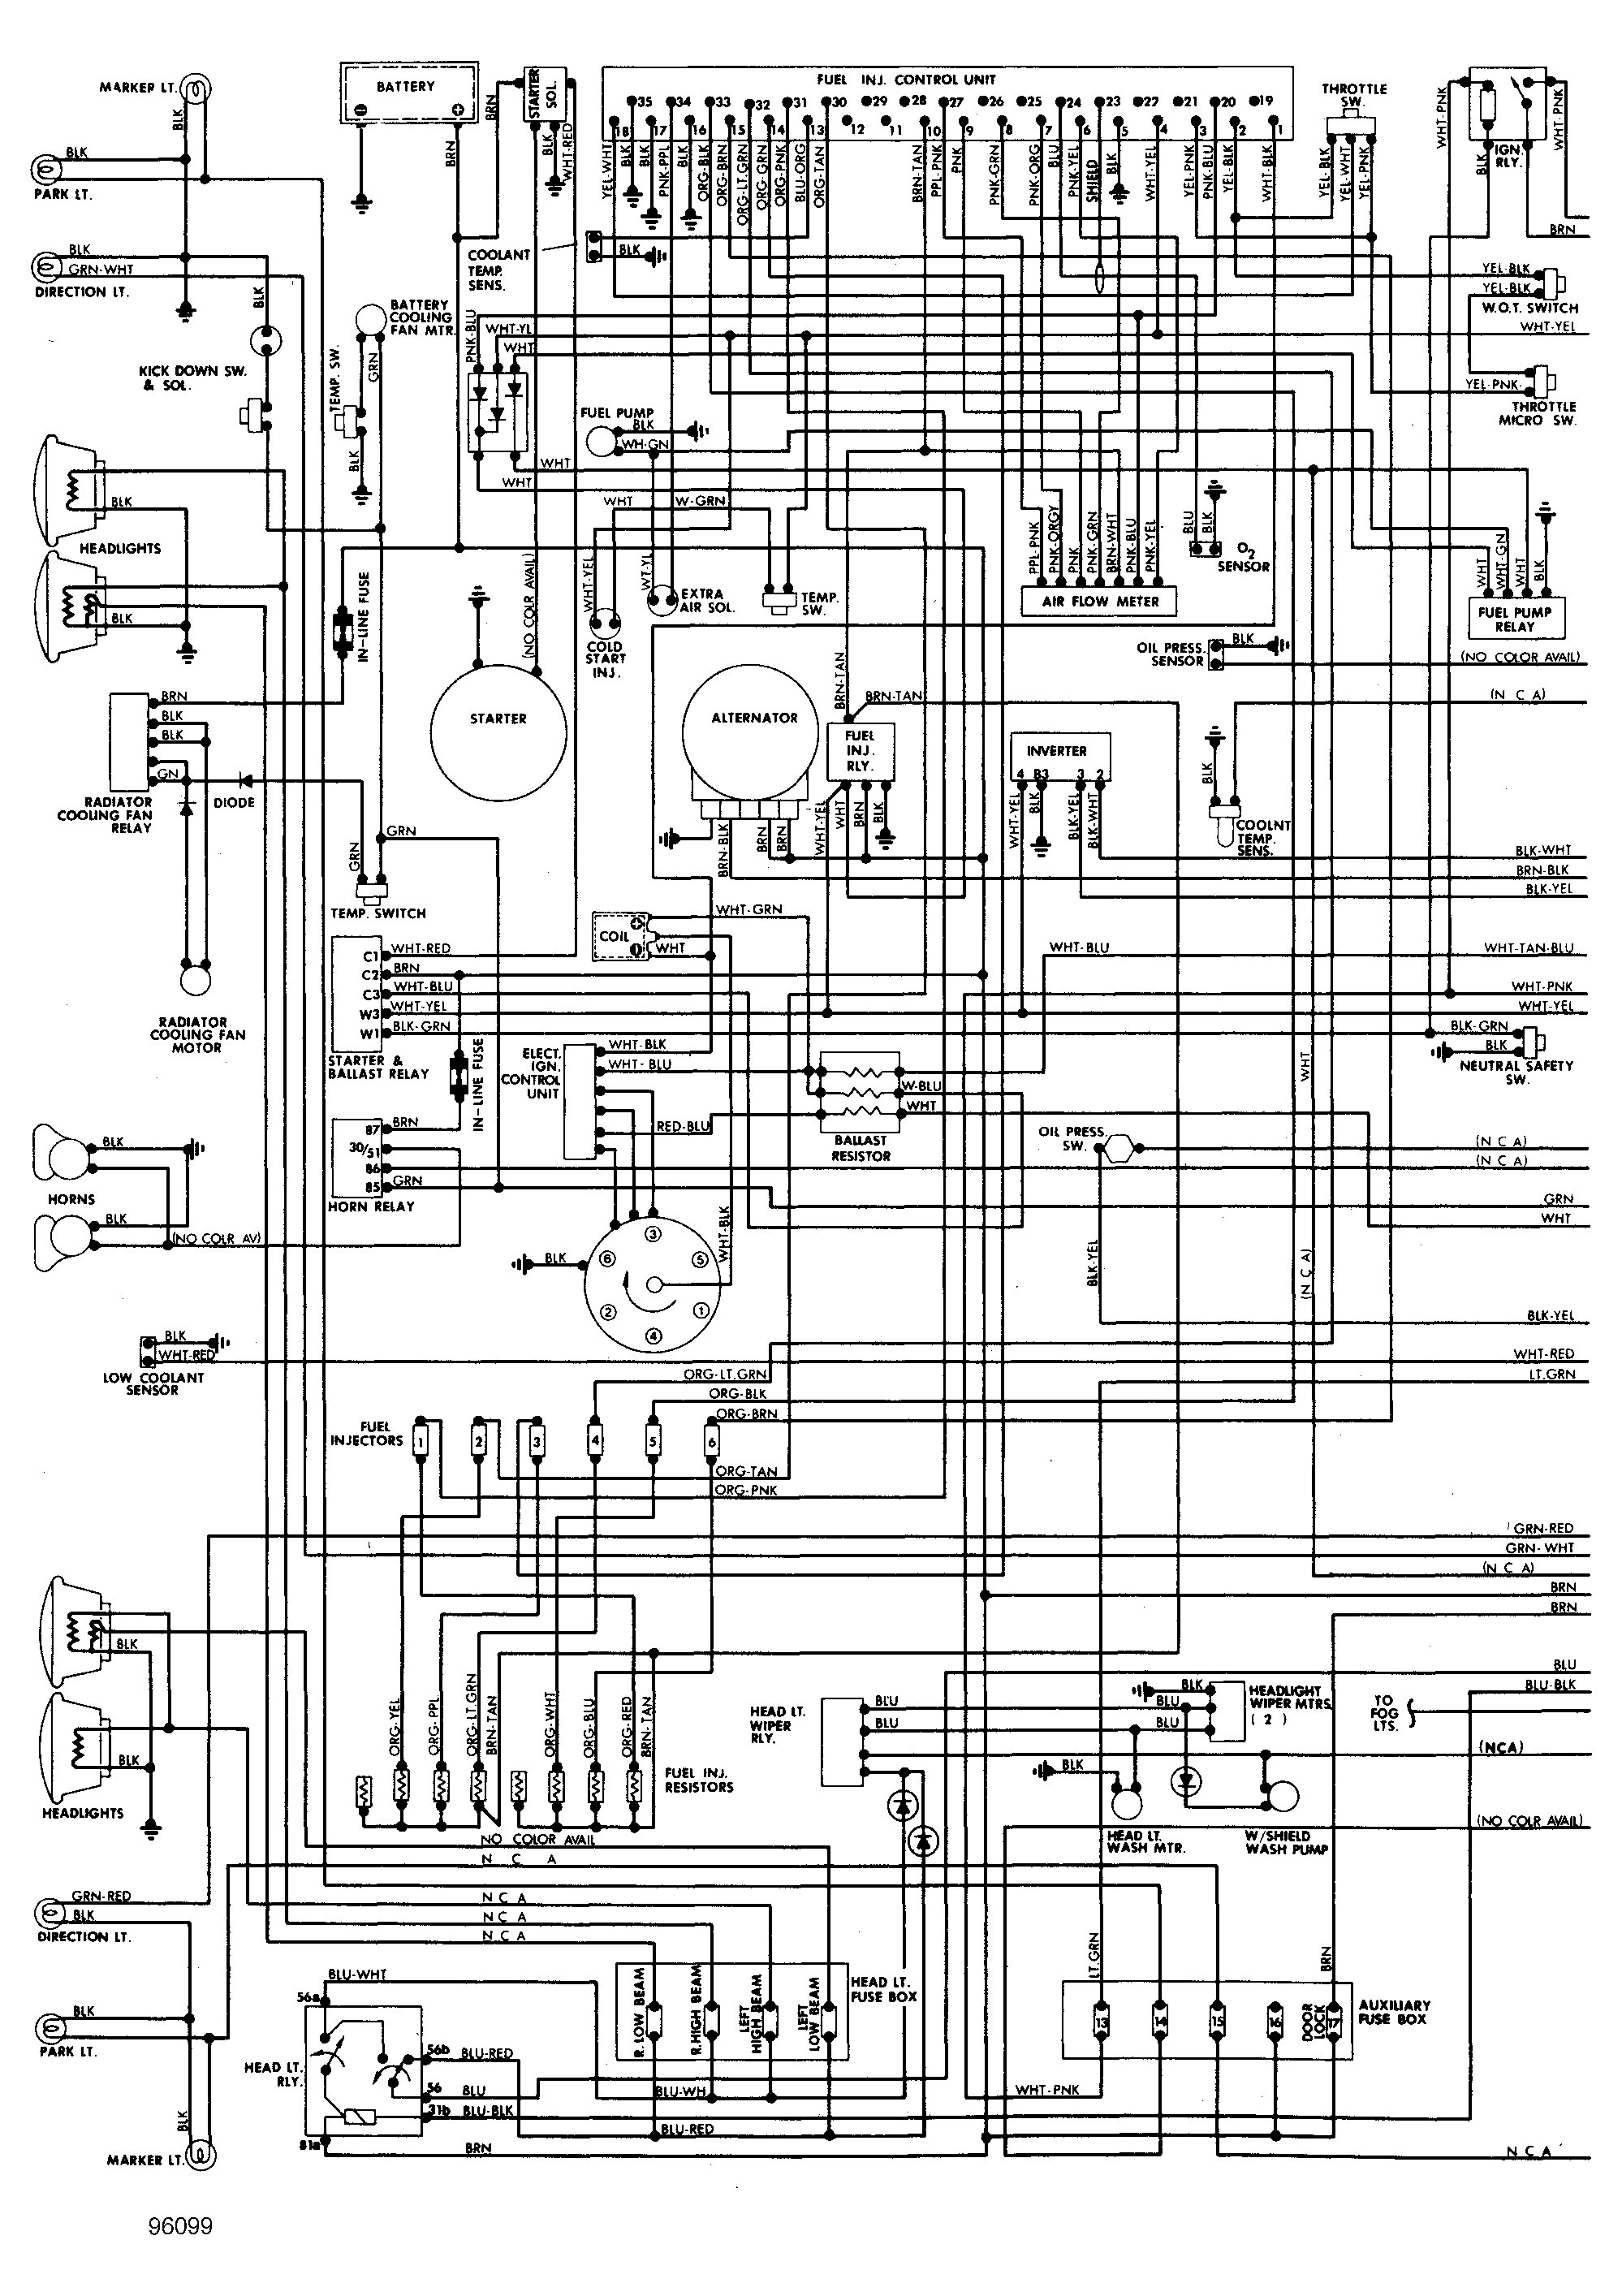 Jaguar Alternator Wiring Diagram Valid Car 2000 Mercury Grand Marquis Fuel  Pump Wiring Schematics and